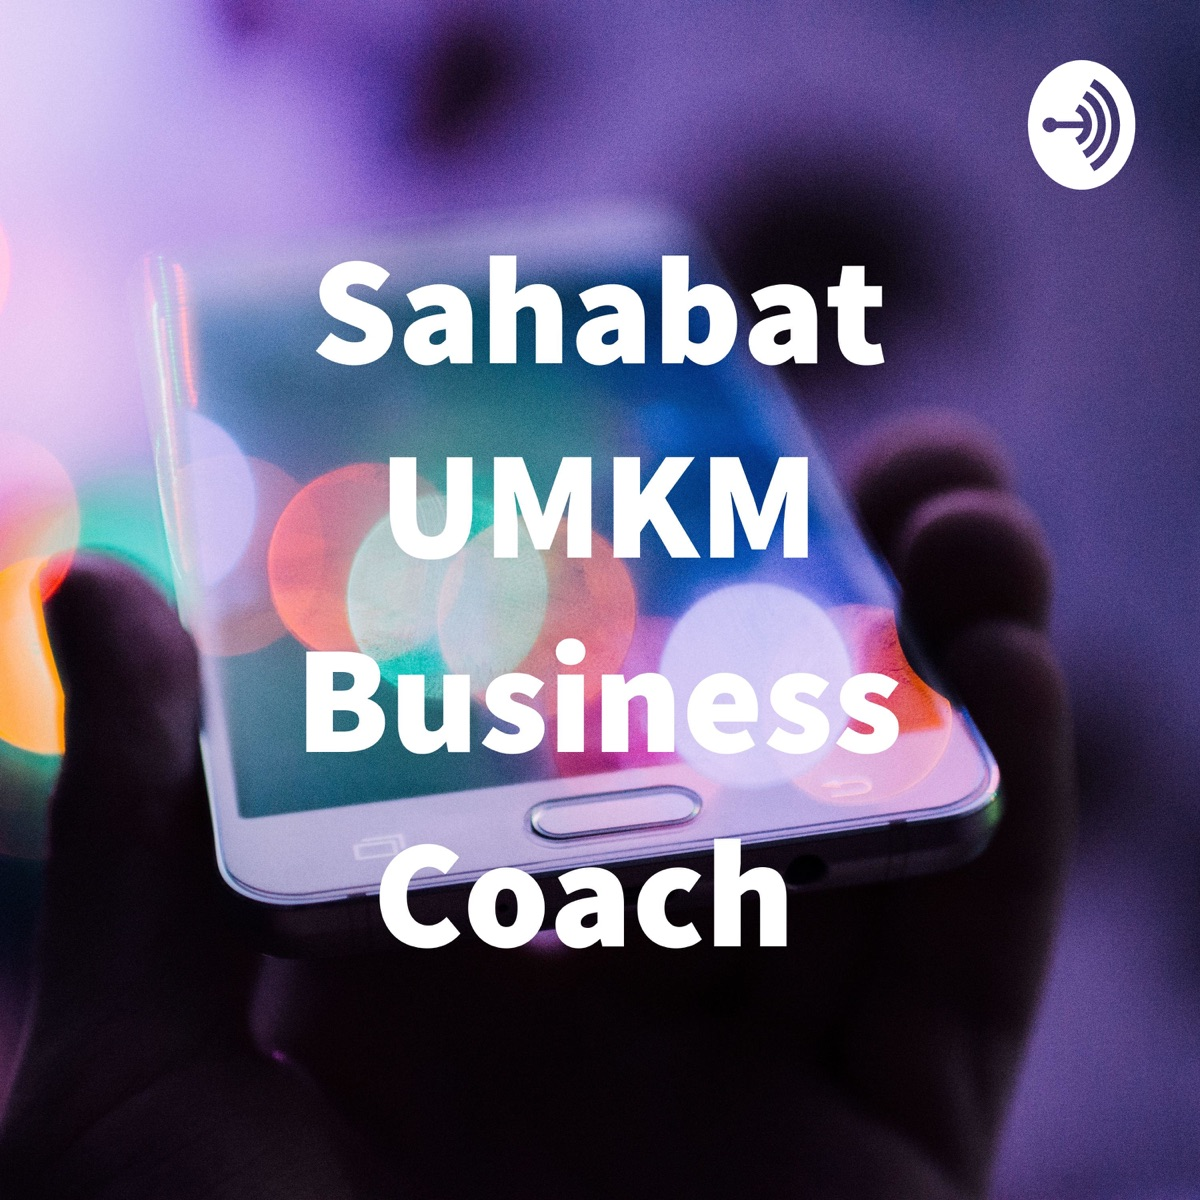 Sahabat UMKM Business Coach